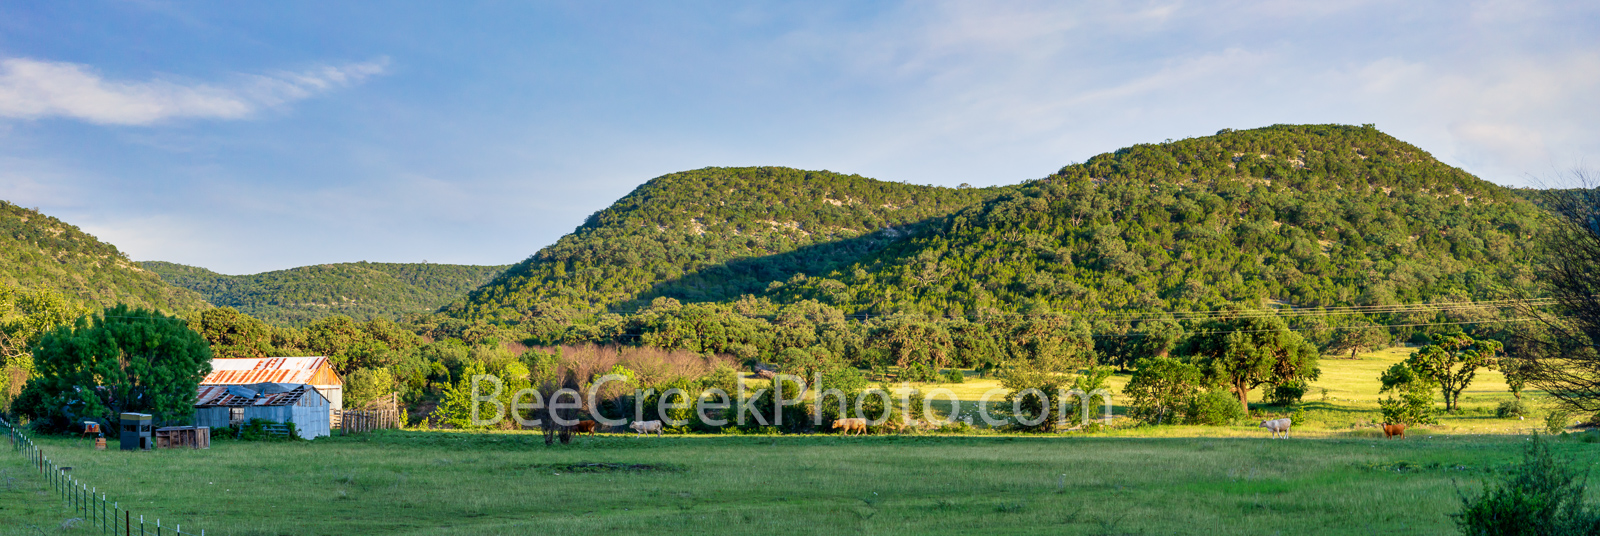 Texas Hill Country Rural Landscape - We came upon this worderful old barn and a few cows heading that way with the hills in the...